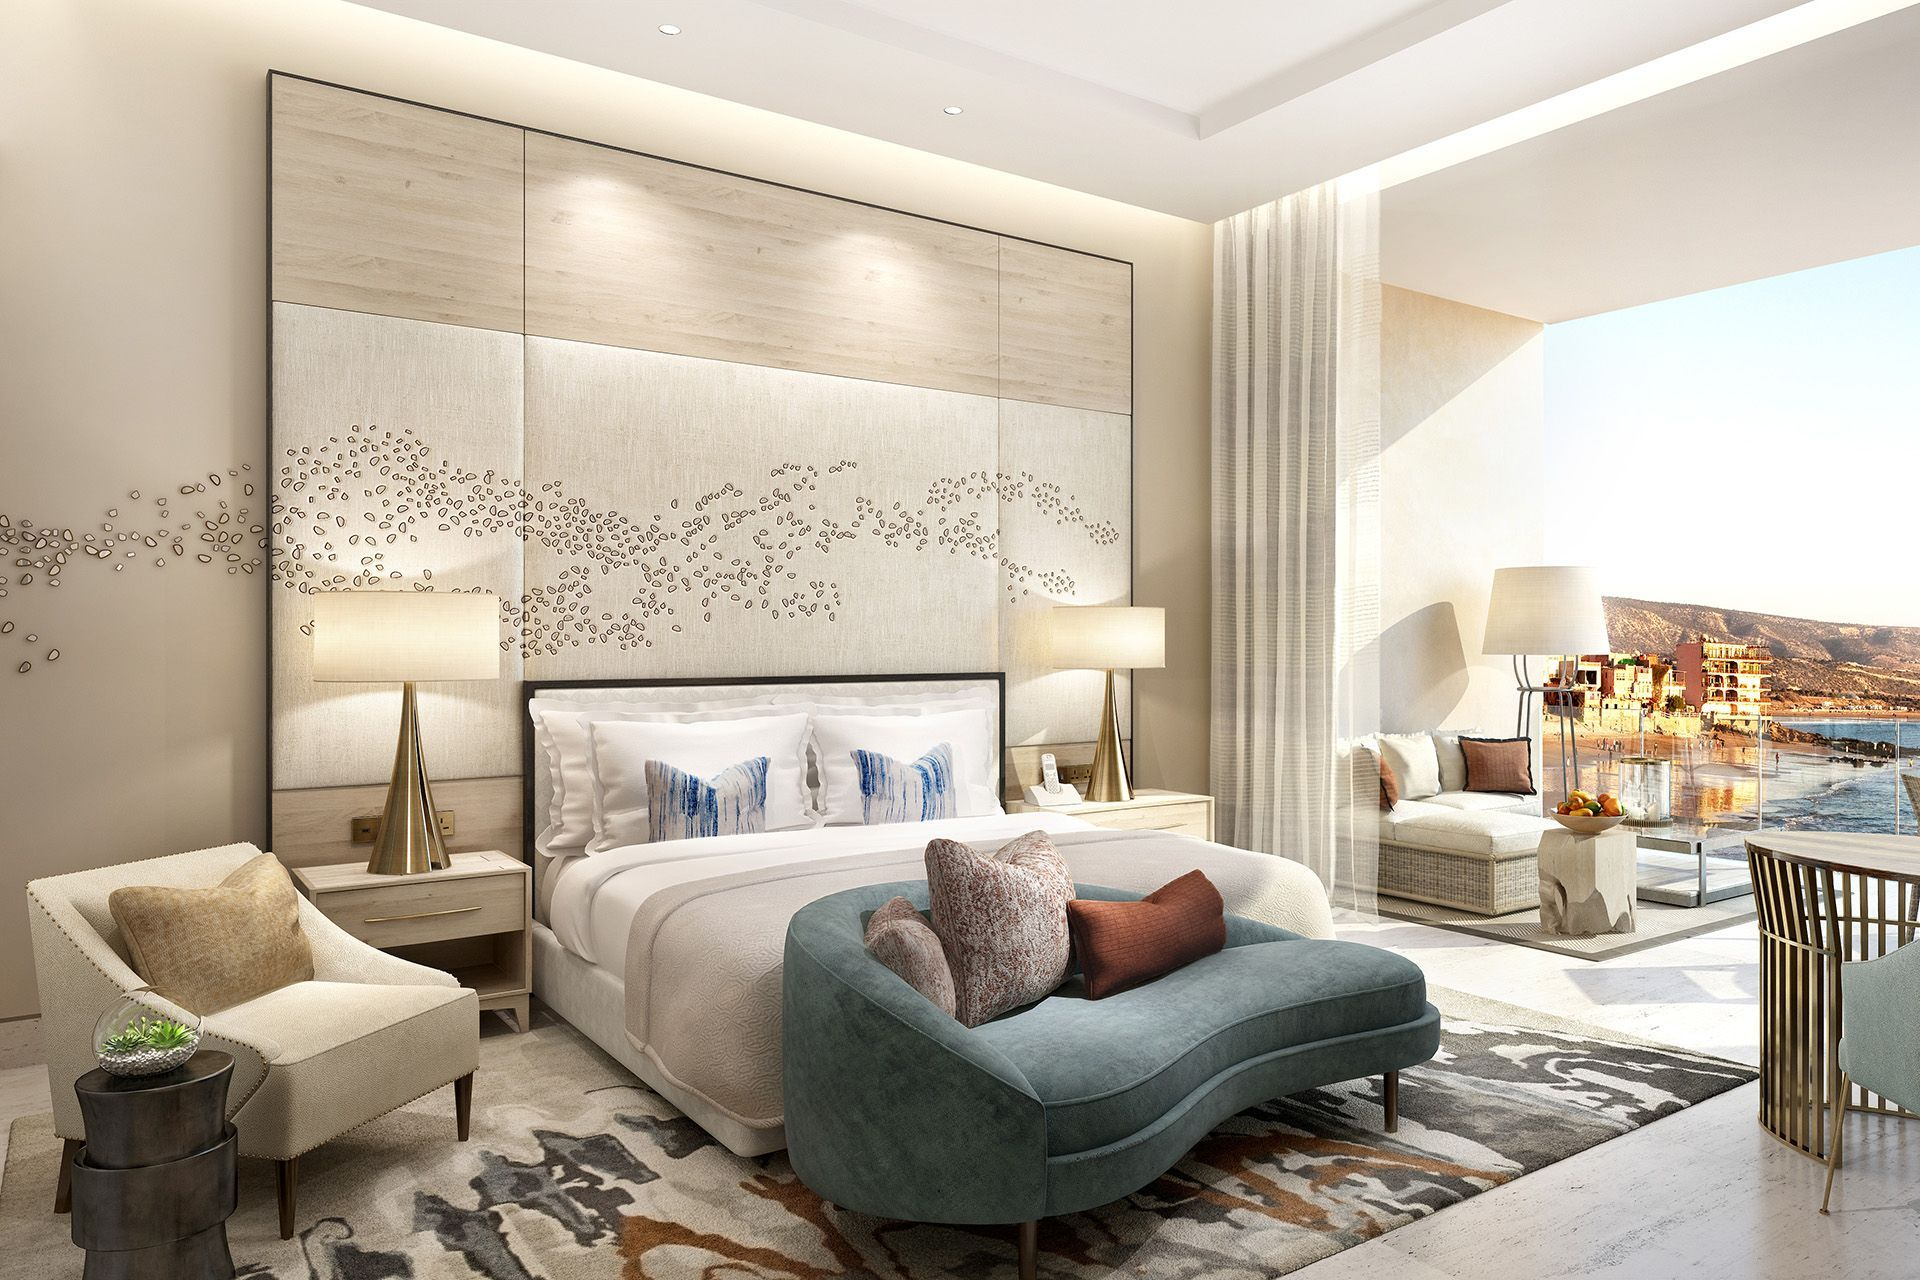 Four seasons taghazout interior designers wimberly for Bedroom decorative accessories